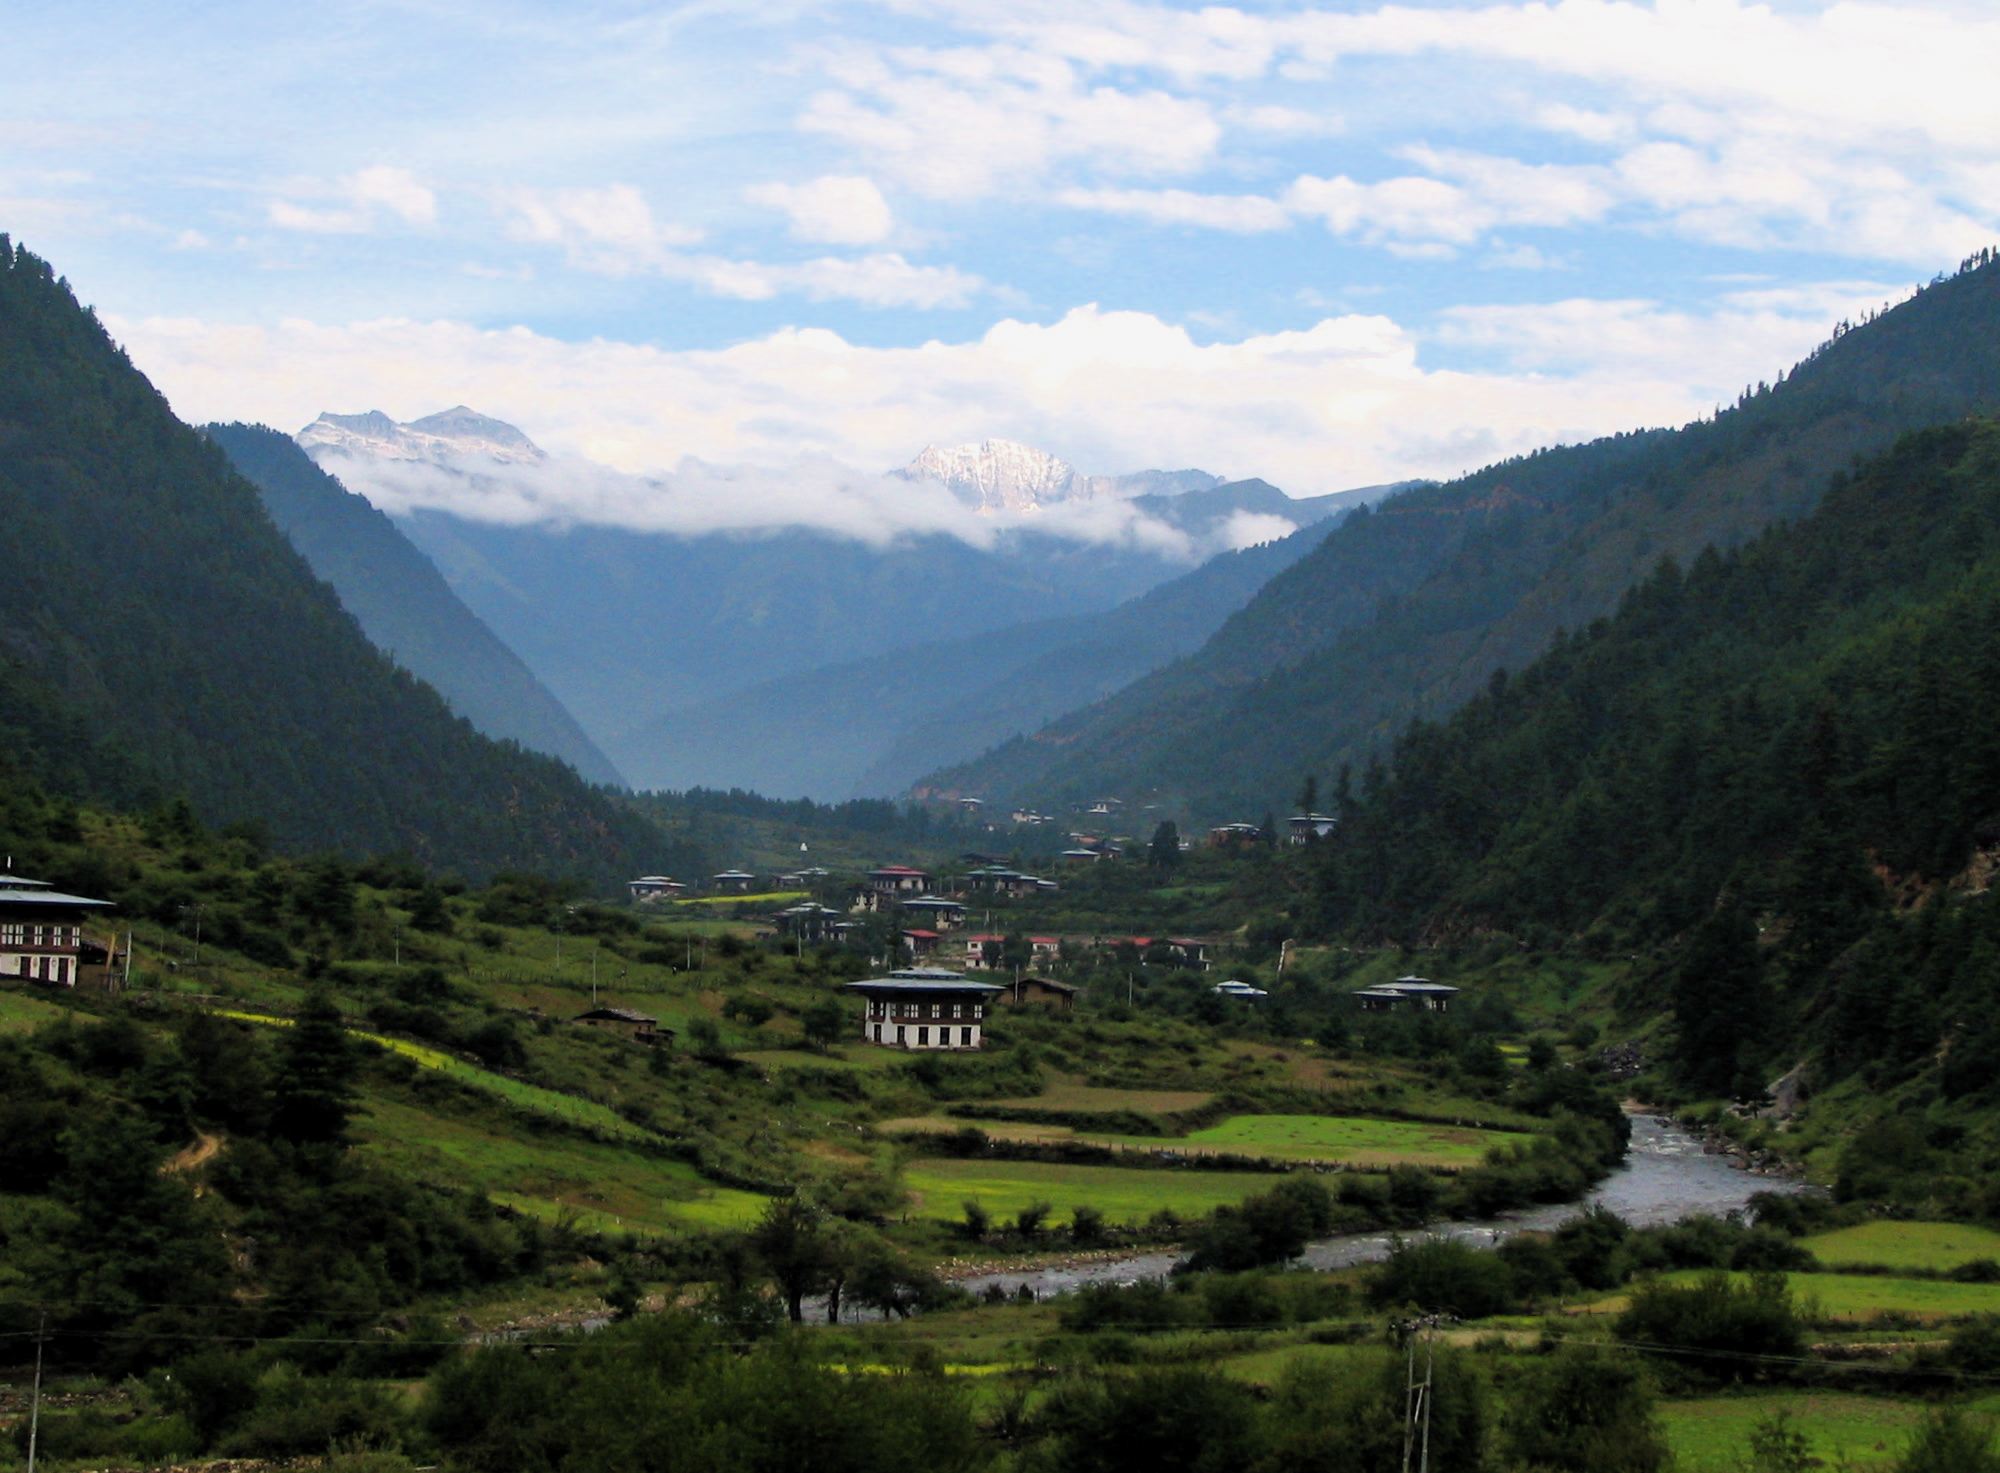 The steep Haa Valley in western Bhutan looks toward the snow-capped Himalayas. Photo by Douglas J McLaughlin/Wikimedia